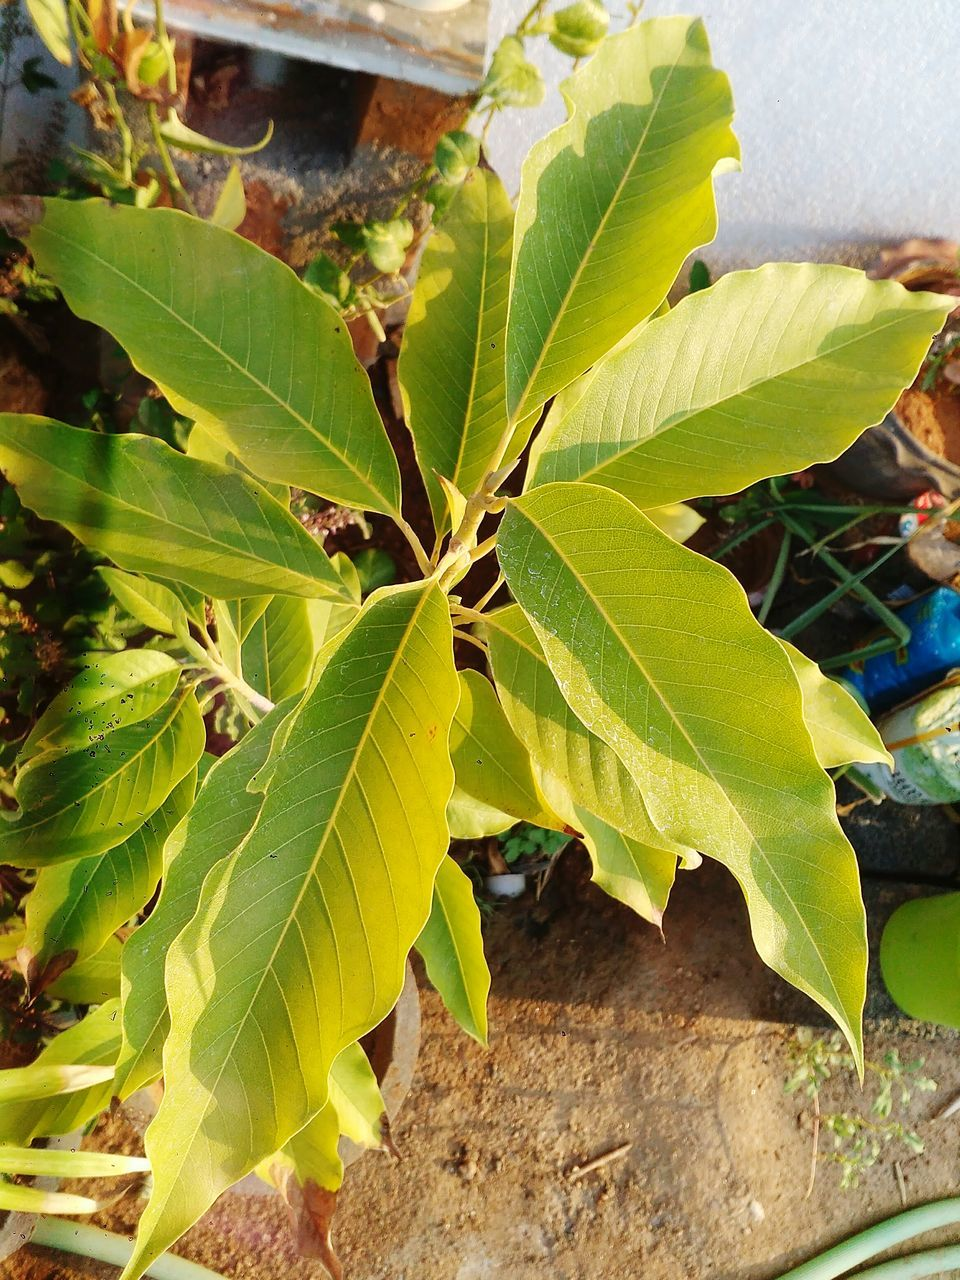 leaf, growth, green color, nature, day, plant, outdoors, freshness, no people, close-up, beauty in nature, fragility